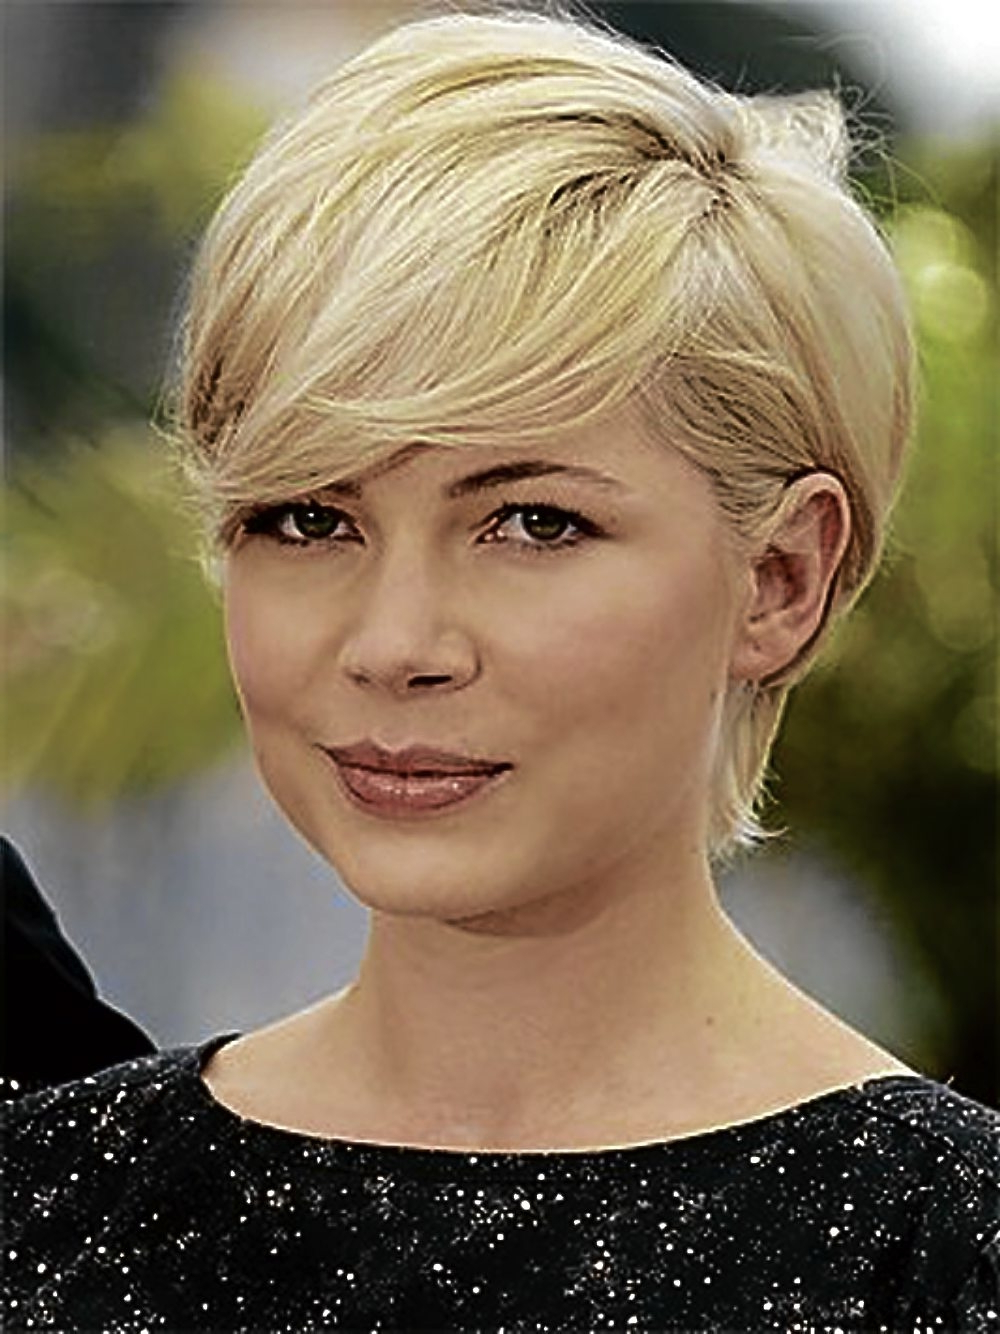 Short Pixie Haircuts For Thick Hair – Short And Cuts Hairstyles With Regard To Edgy Short Haircuts For Thick Hair (View 23 of 25)